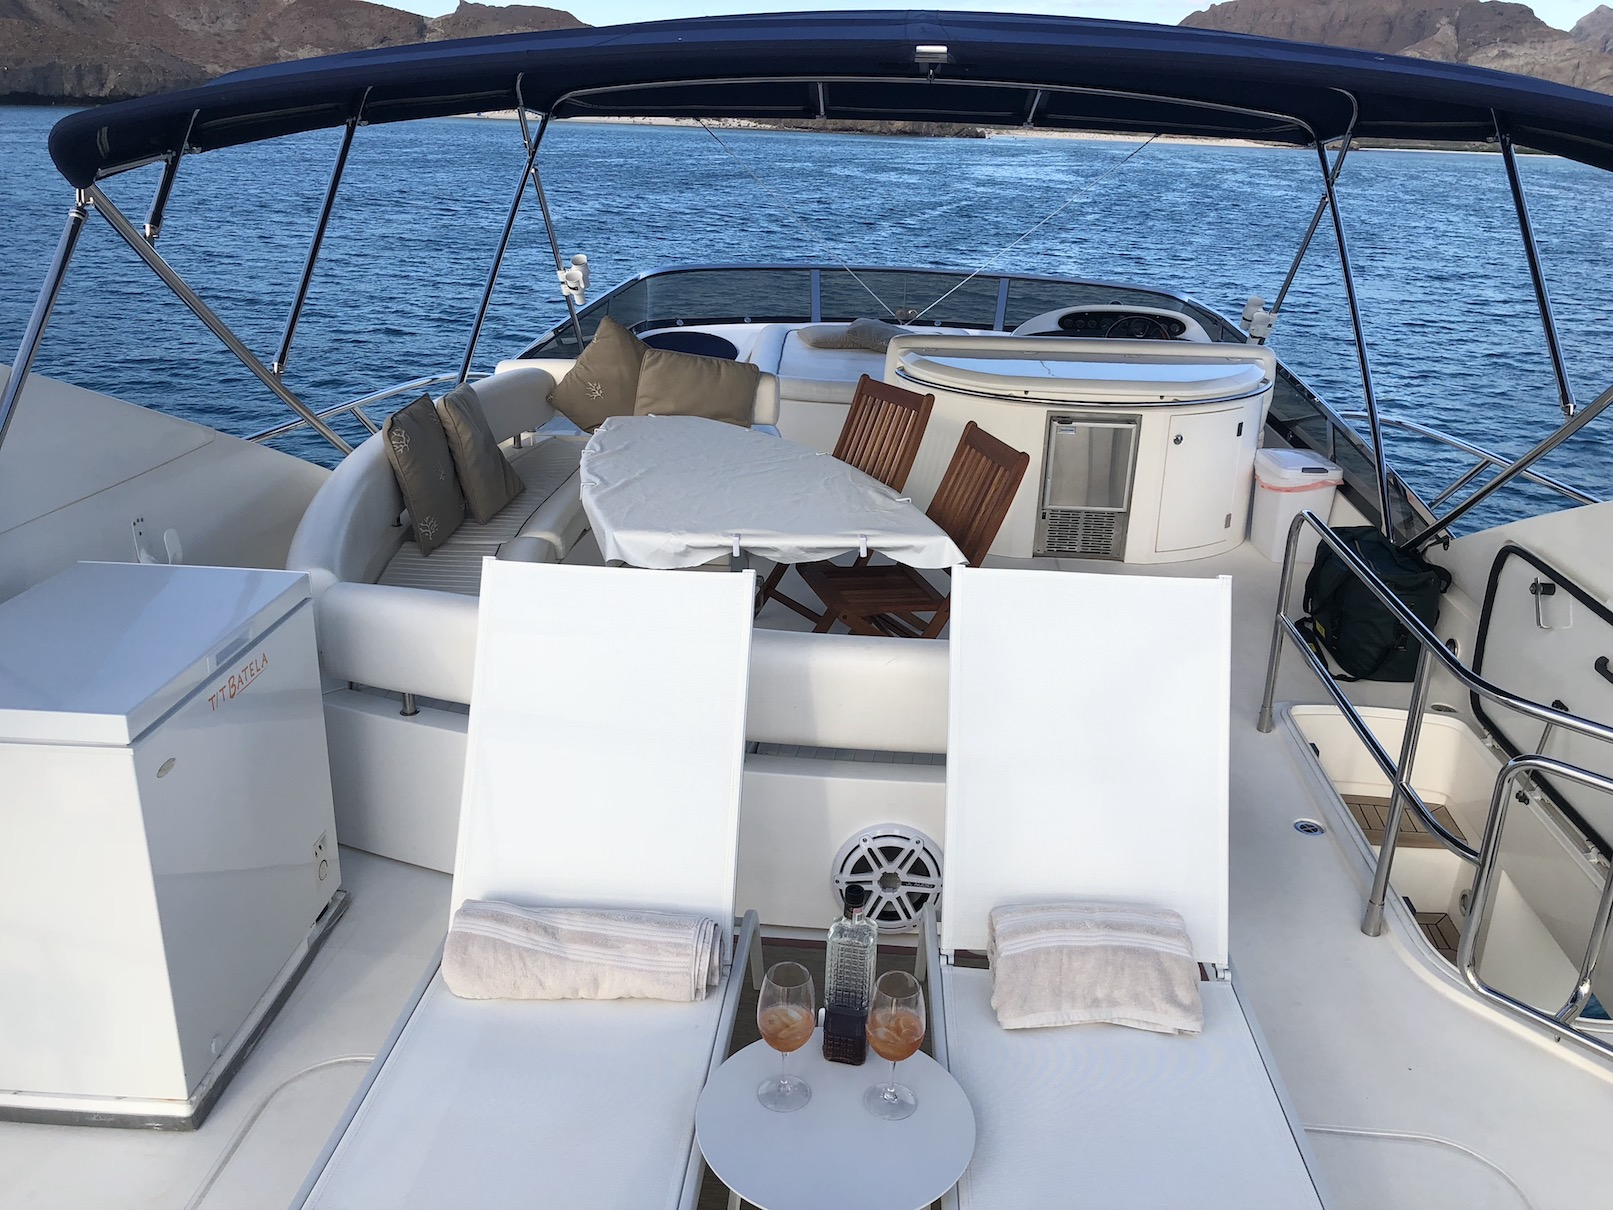 Sunseeker de 76 pies – Yate a Motor - Flybridge & chaises